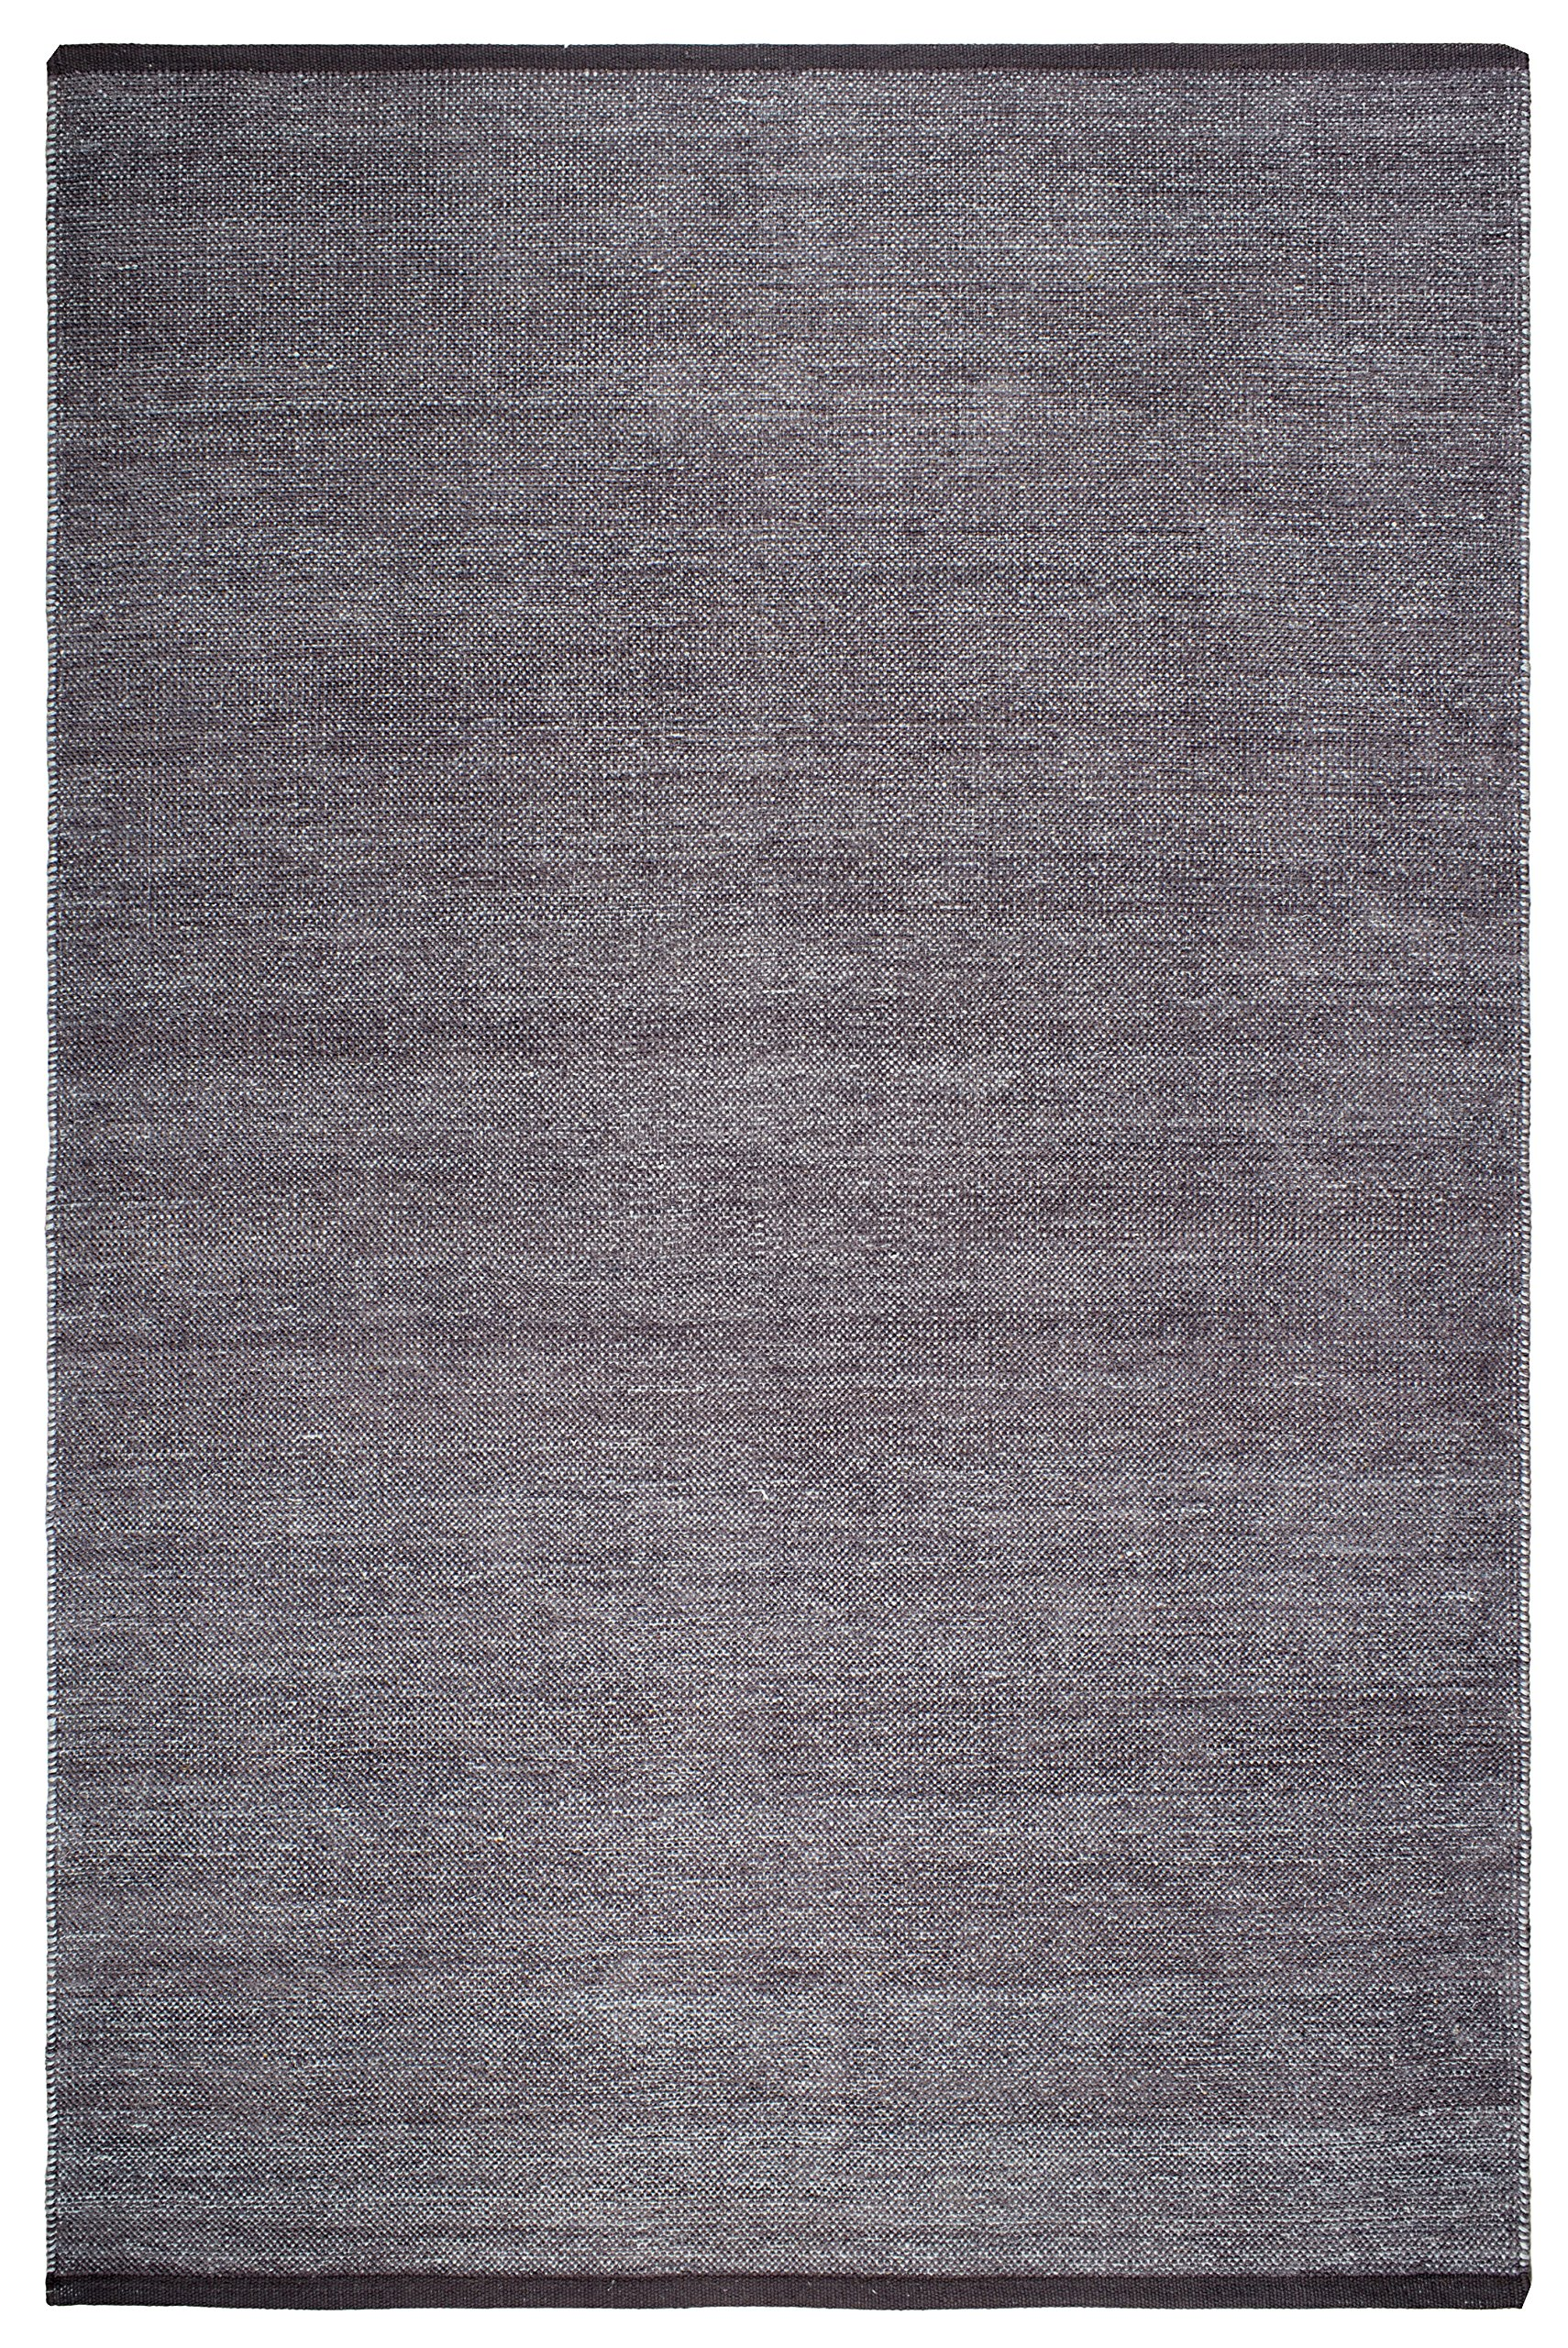 Fab Habitat Reversible Cotton Area Rugs | Rugs for Living Room, Bathroom Rug, Kitchen Rug | Machine Washable | Waterloo -  Gray | 2' x 3'